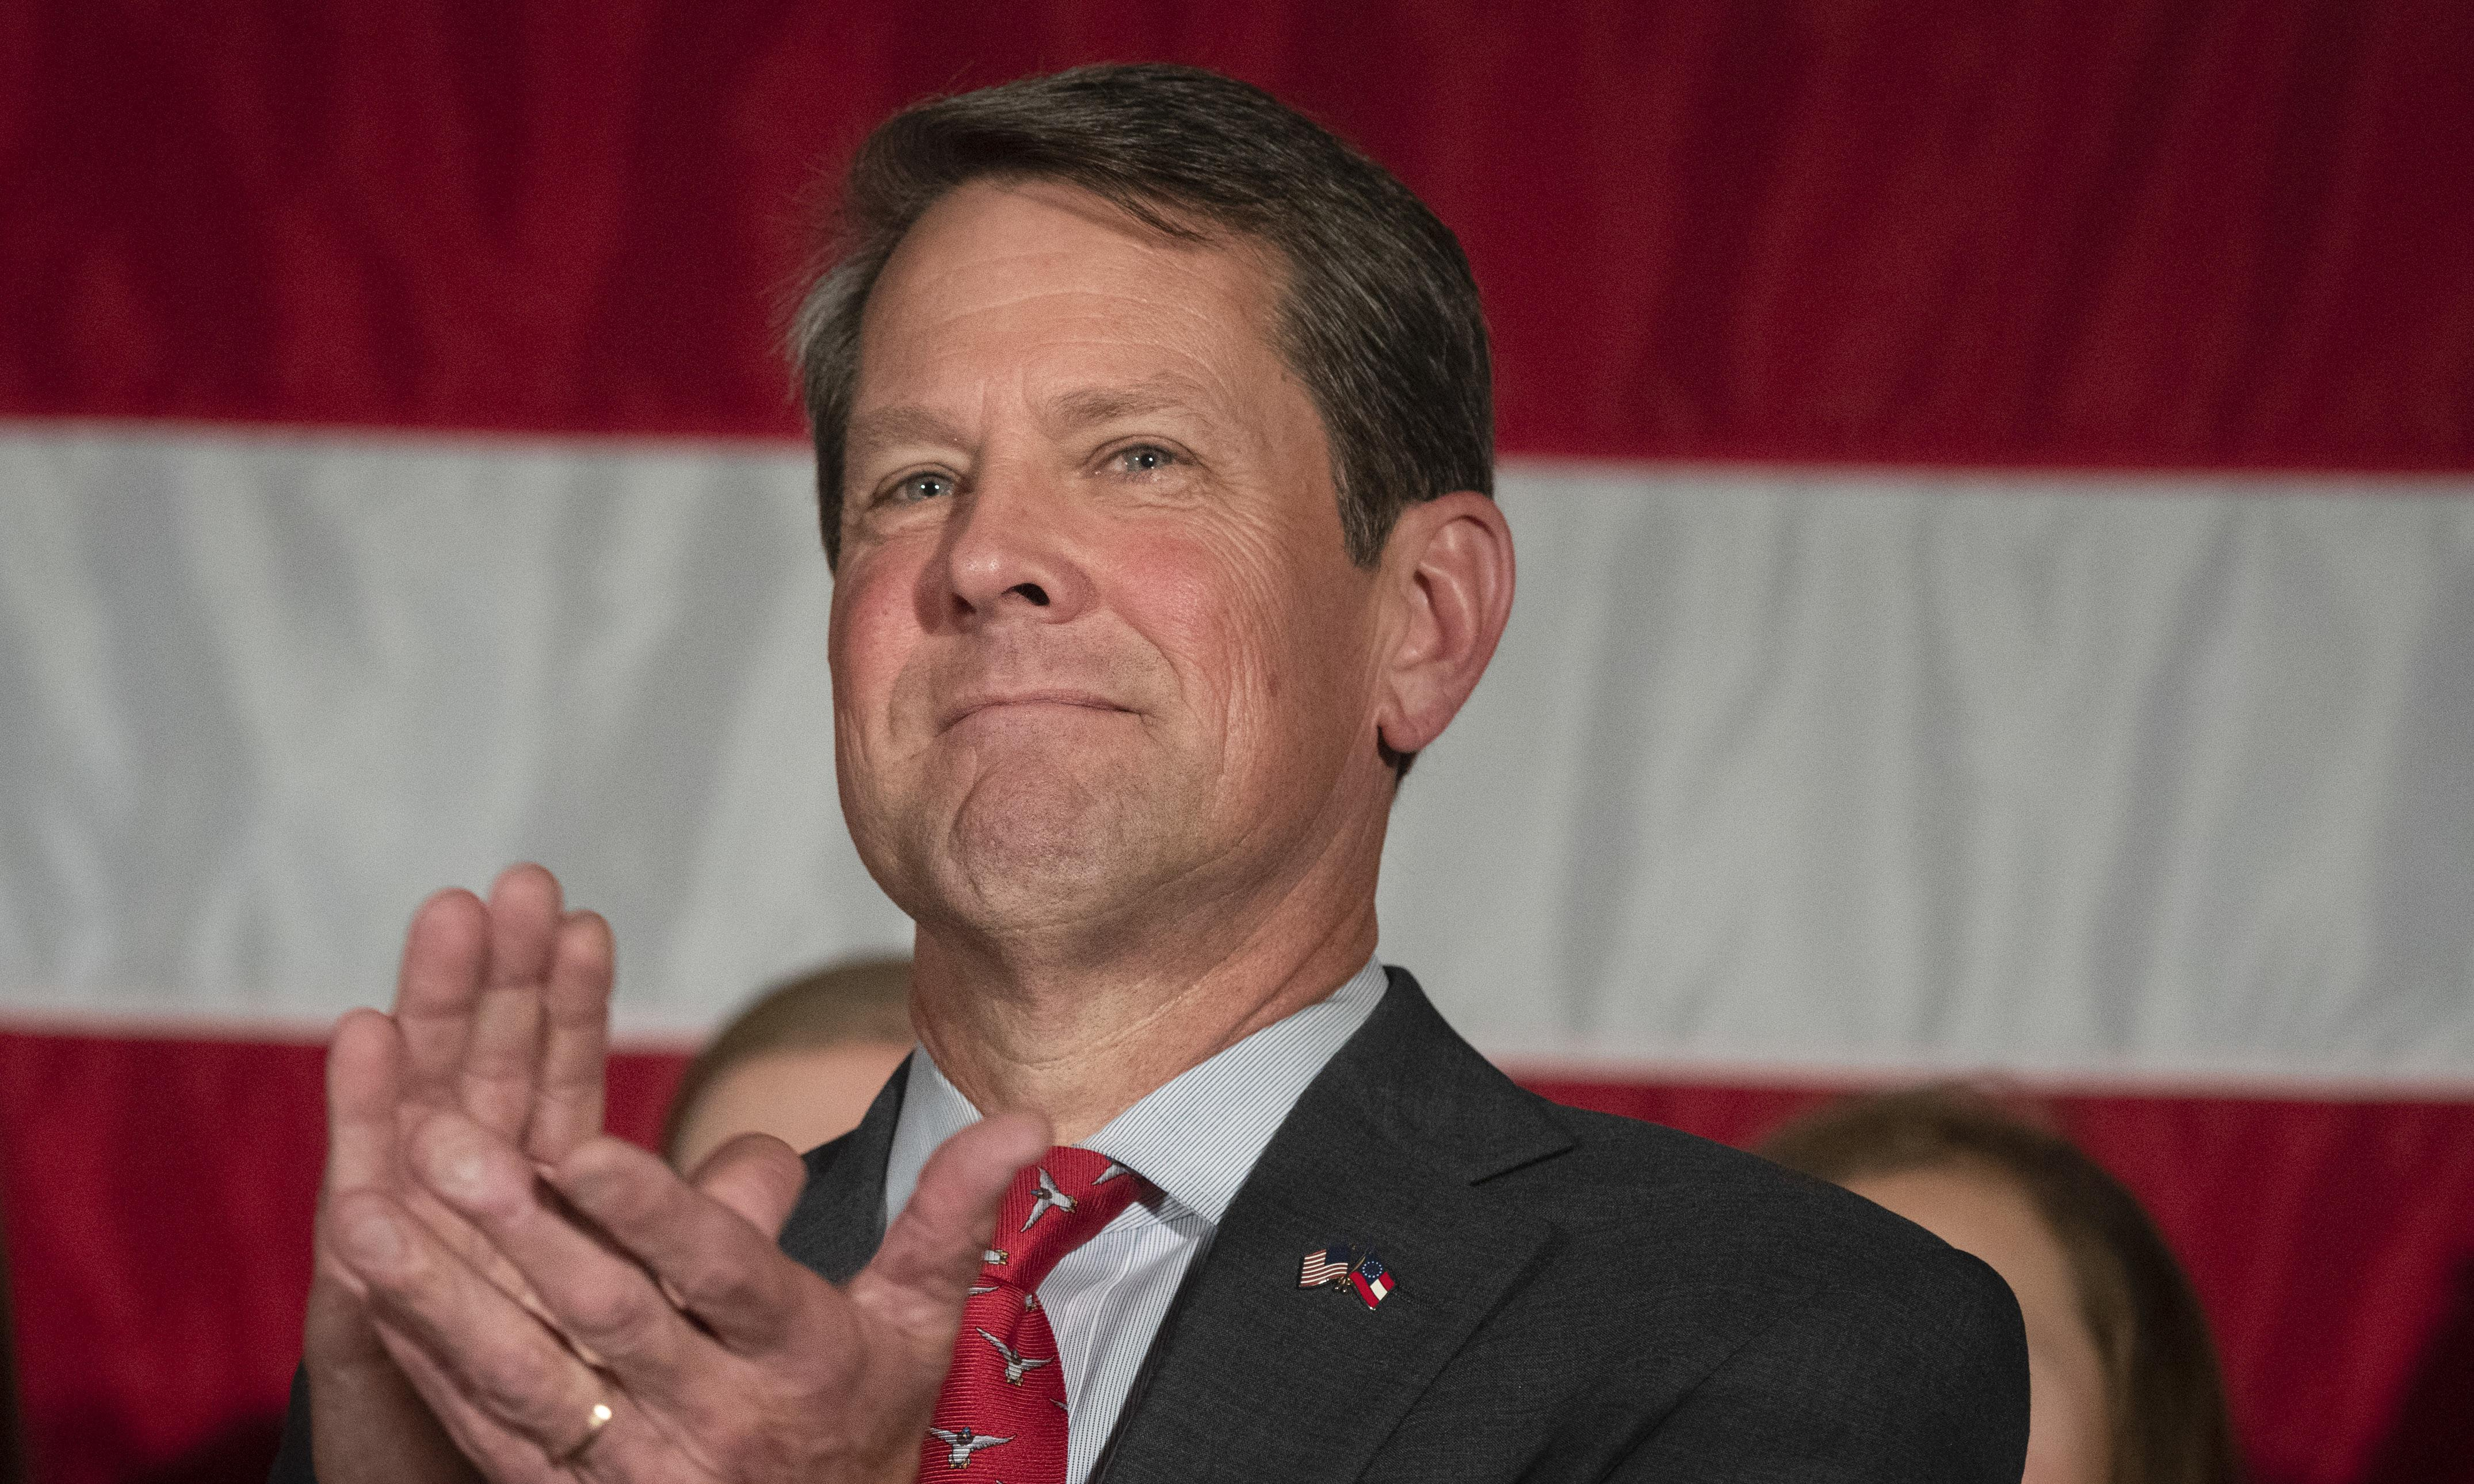 GOP candidate improperly purged 340,000 from Georgia voter rolls, investigation claims